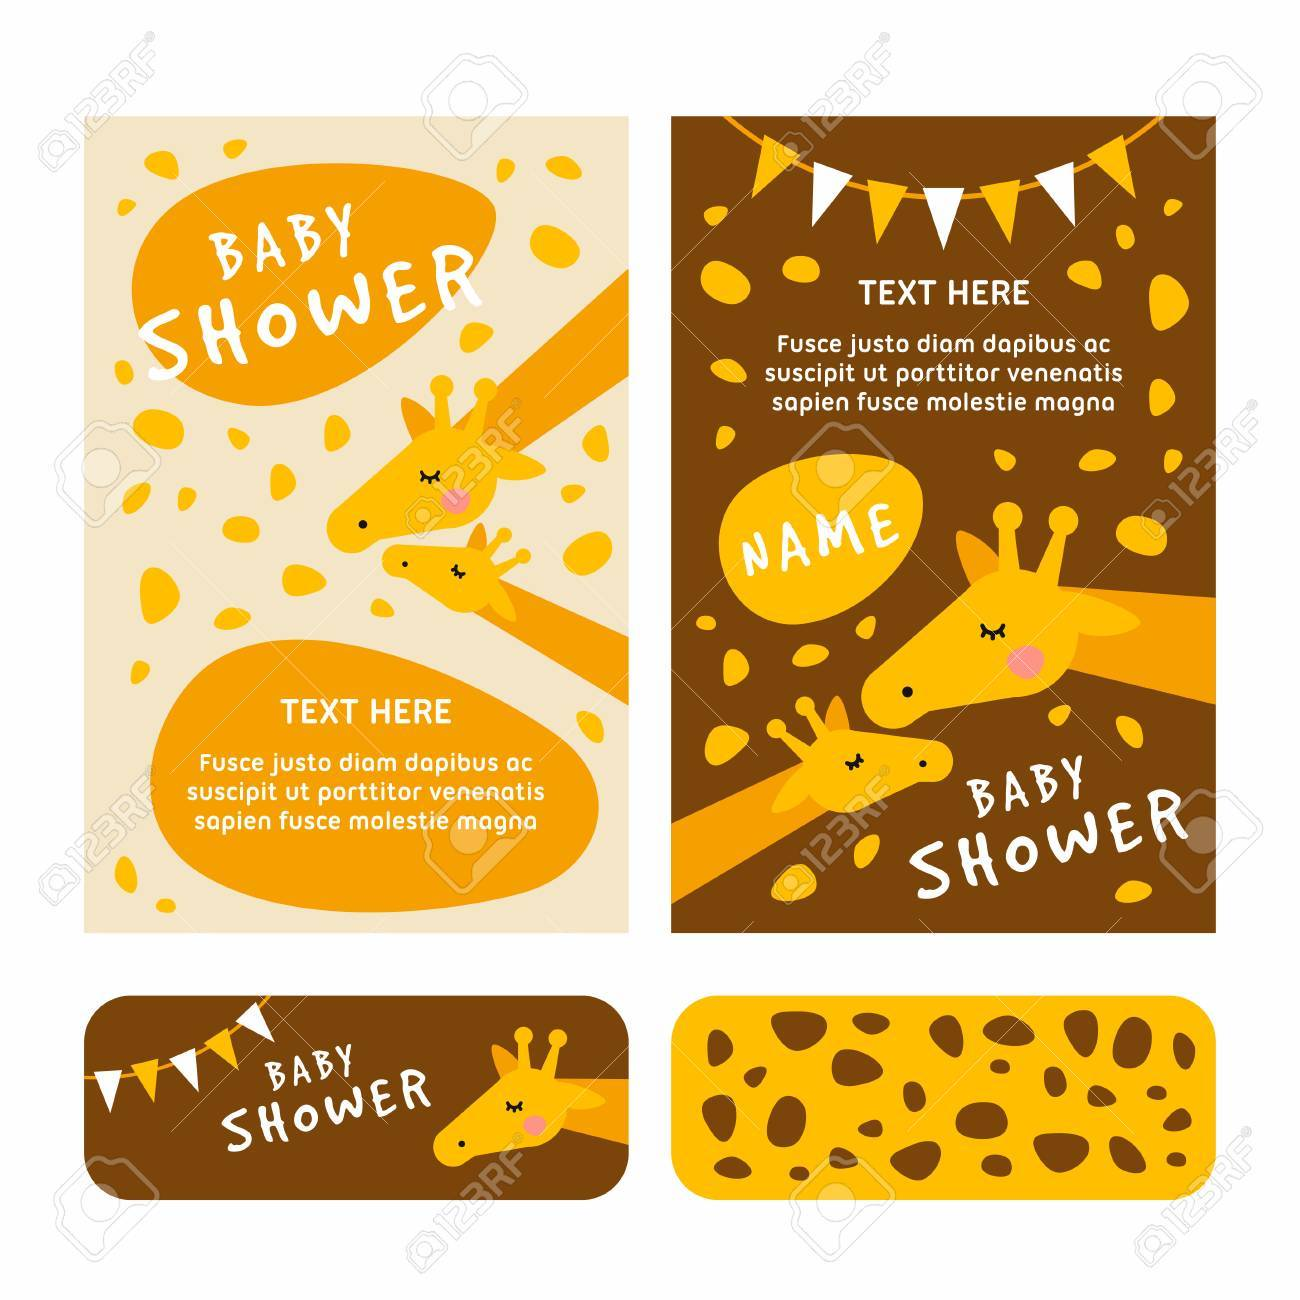 Baby Shower Invitation Card Template Giraffee Brown And Yellow